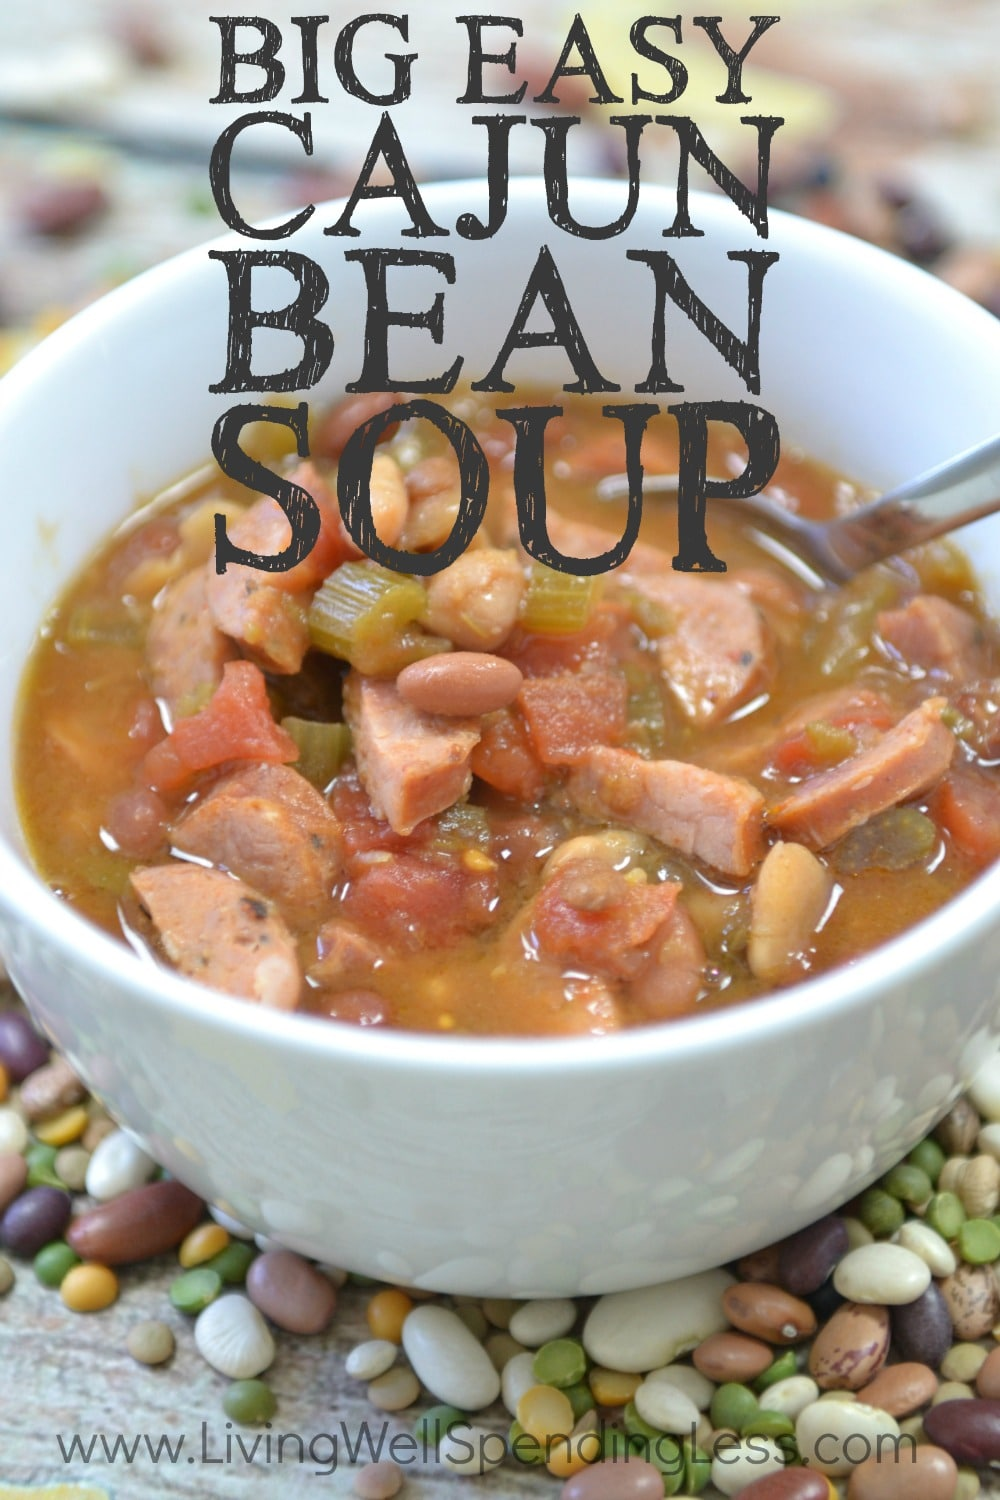 Big Easy Cajun Bean Soup | Freezer Crockpot Recipe | Slow Cooker Cajun Sausage Bean Soup | Slow Cooker Cajun | Freezer Meals | Crockpot Soup Recipe